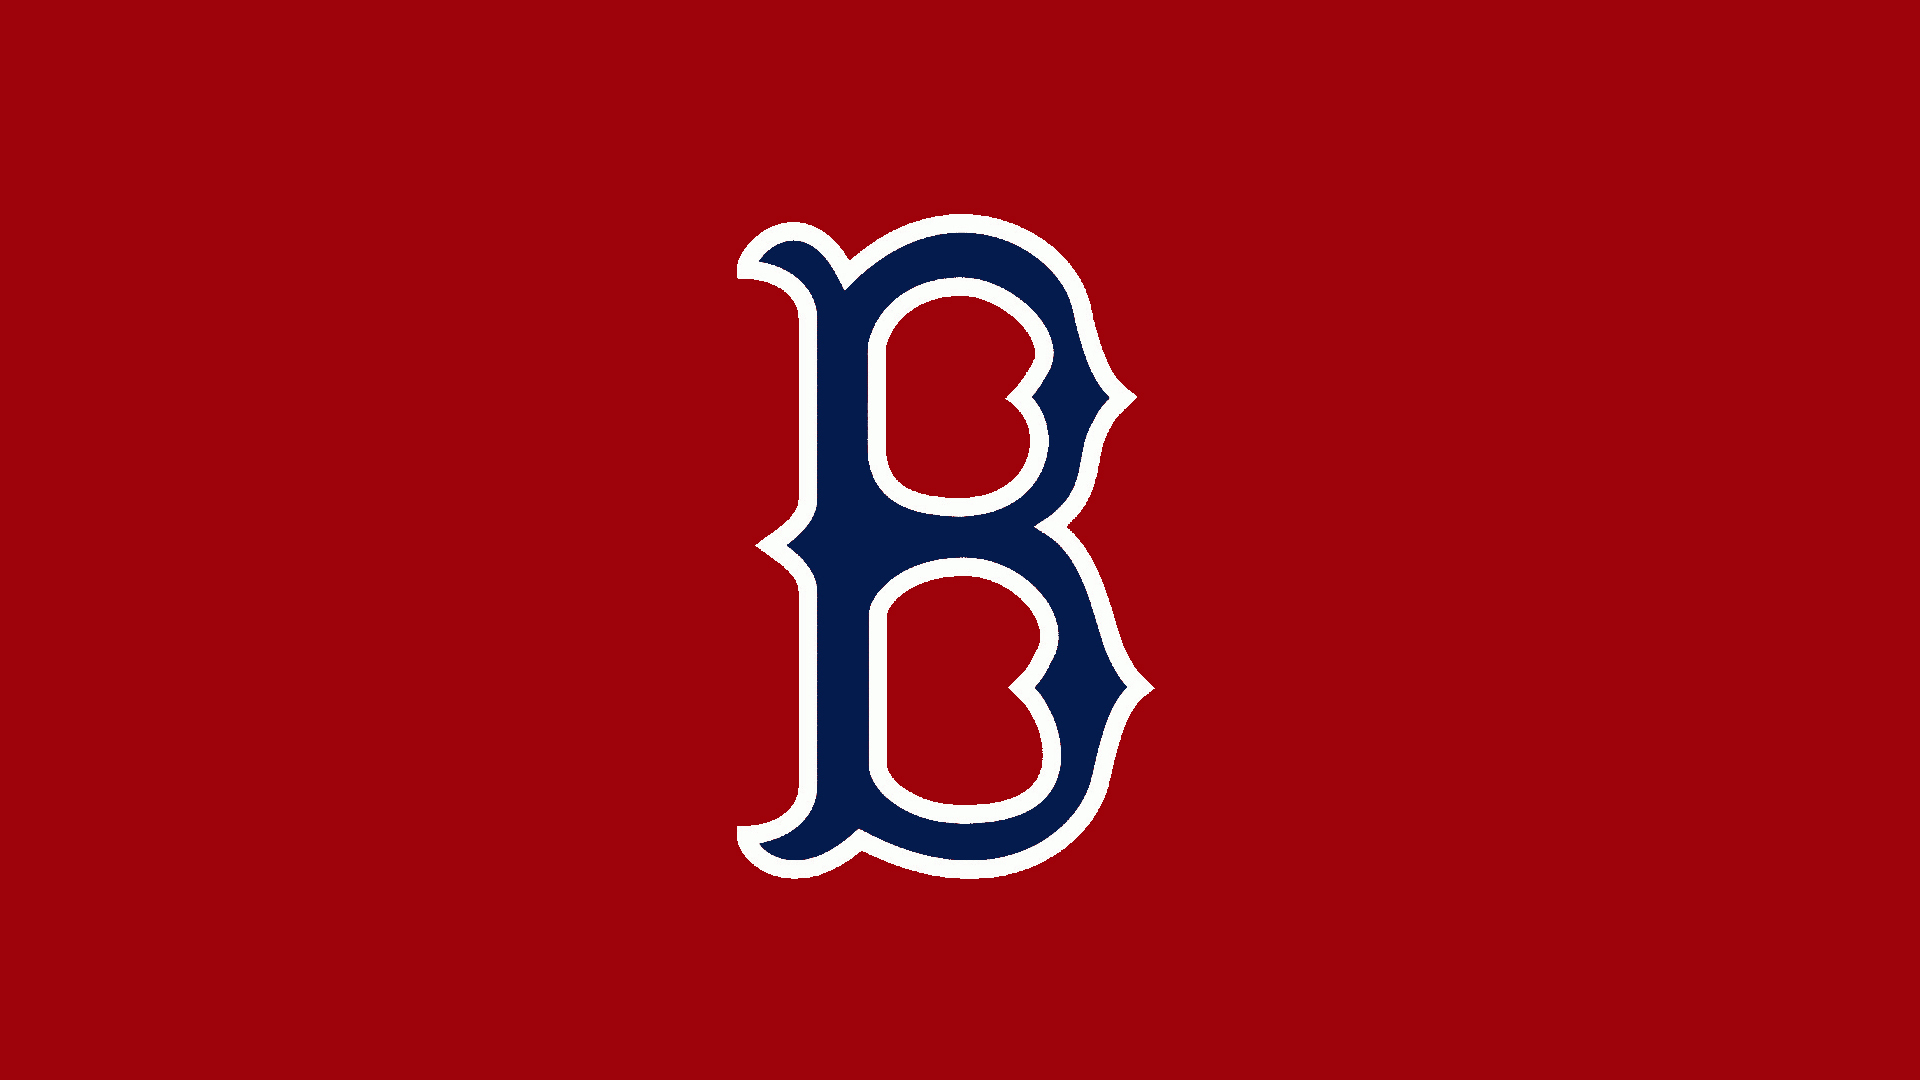 Boston Red Sox Wallpapers | HD Wallpapers Base